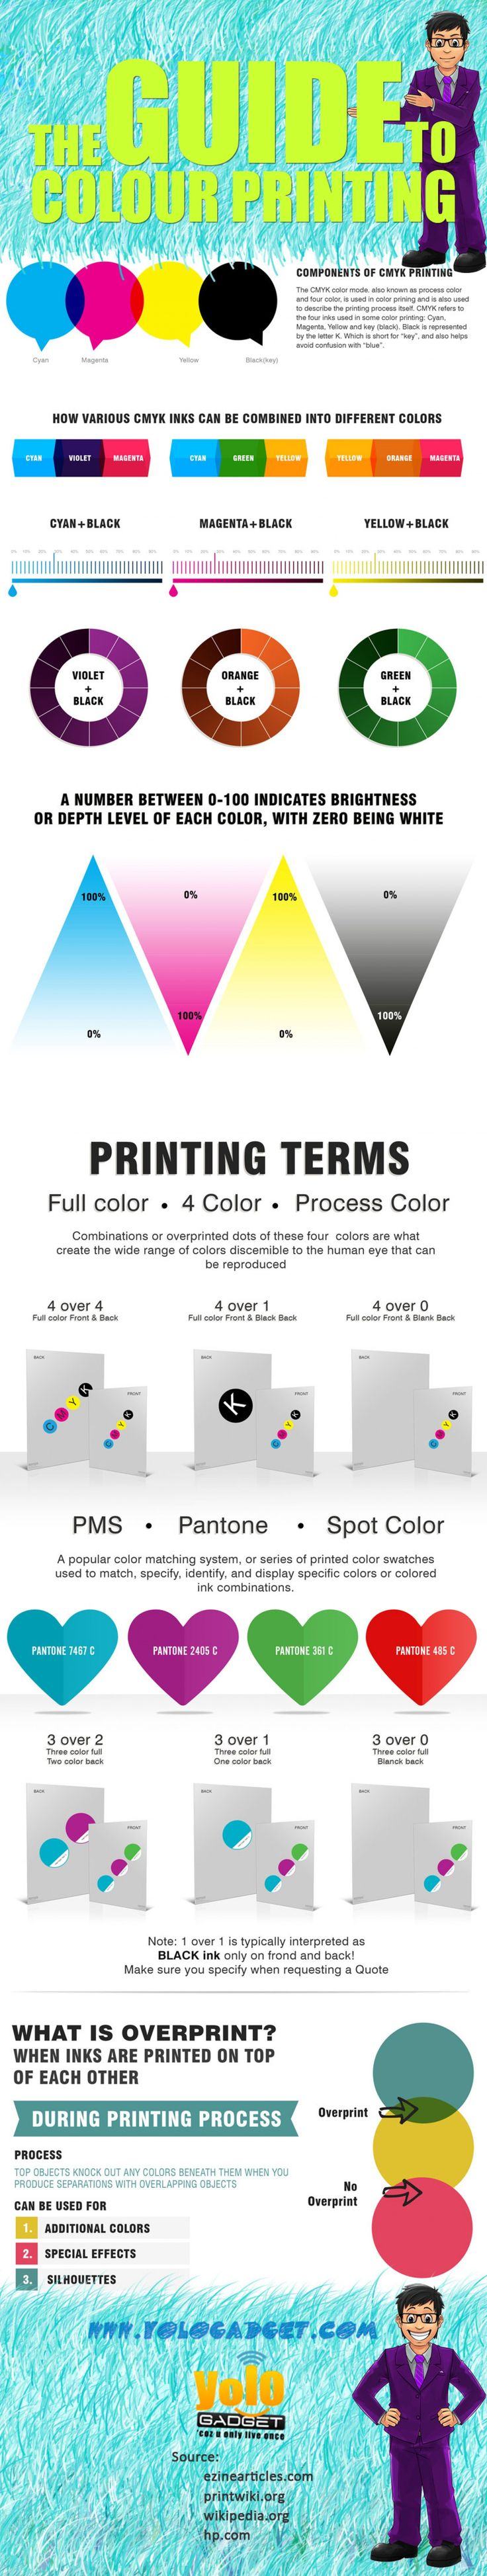 Random colors website - Guide To Colour Printing